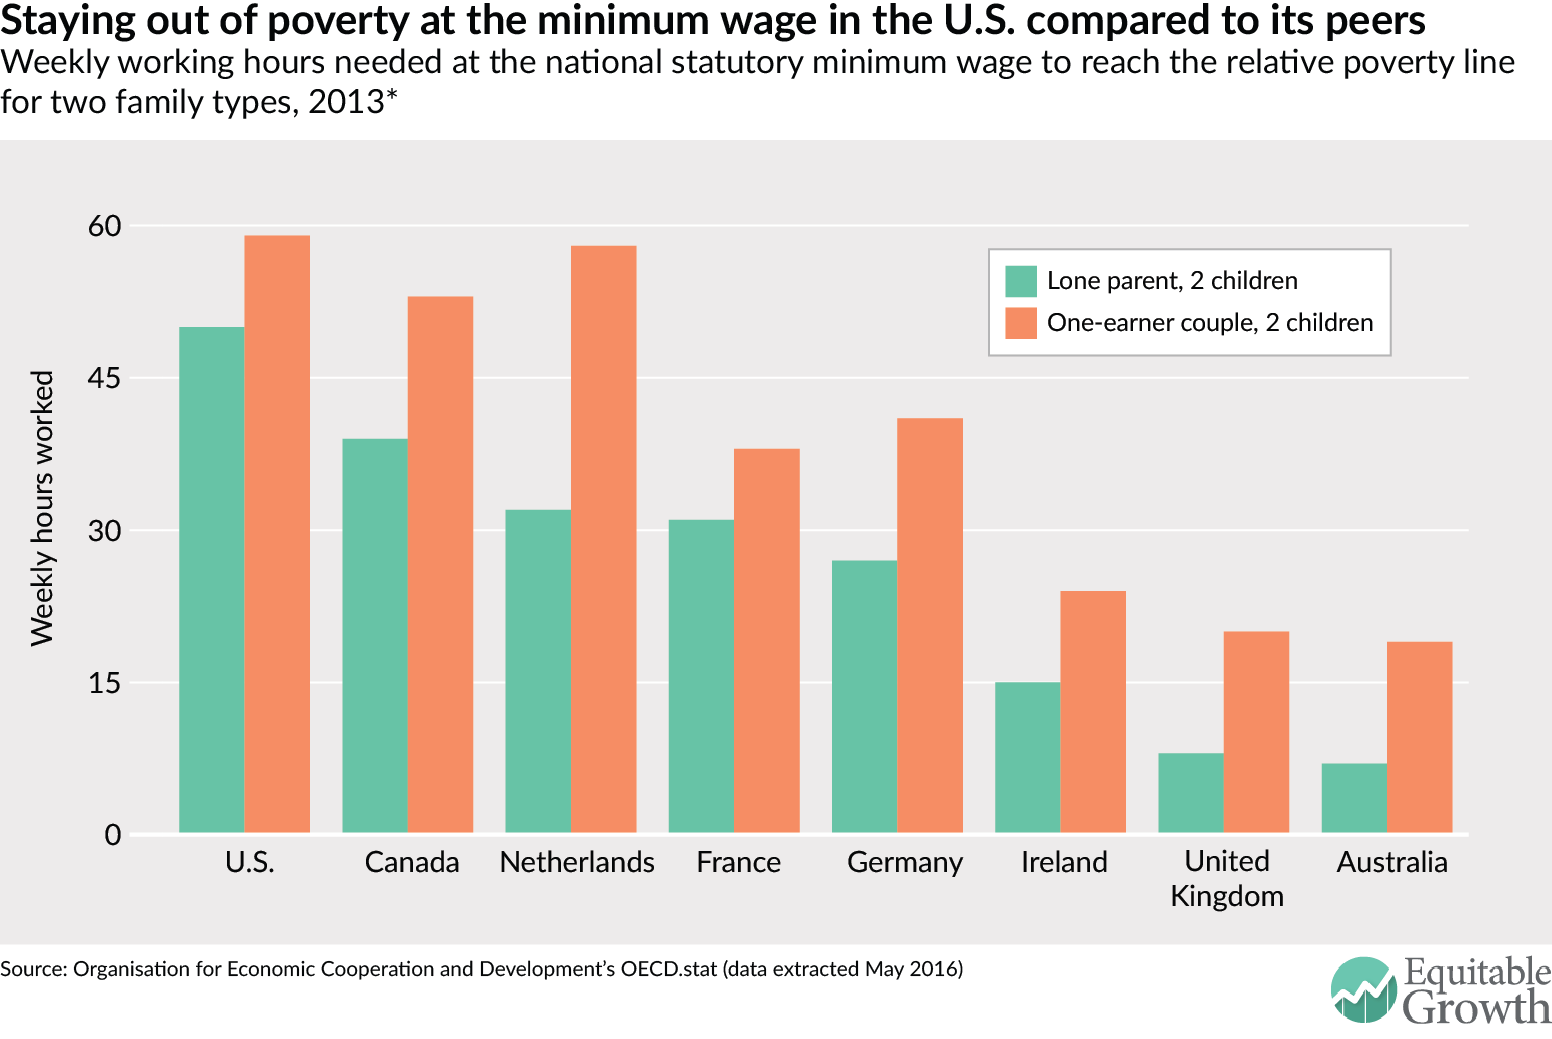 Staying out of poverty at the minimum wage in the U.S compared to its peers